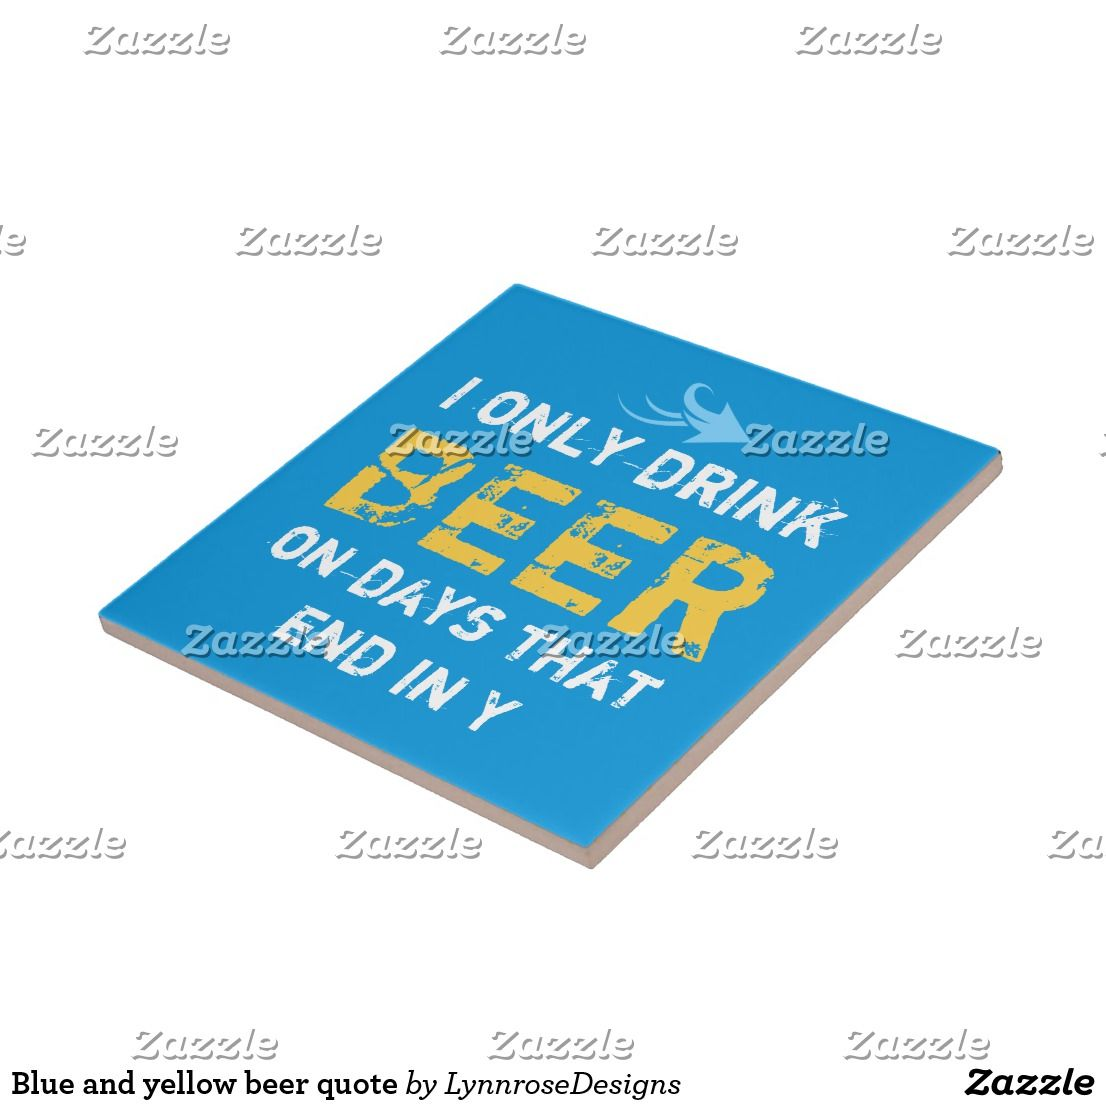 Blue and yellow beer quote ceramic tile | Ceramic Tiles | Pinterest ...